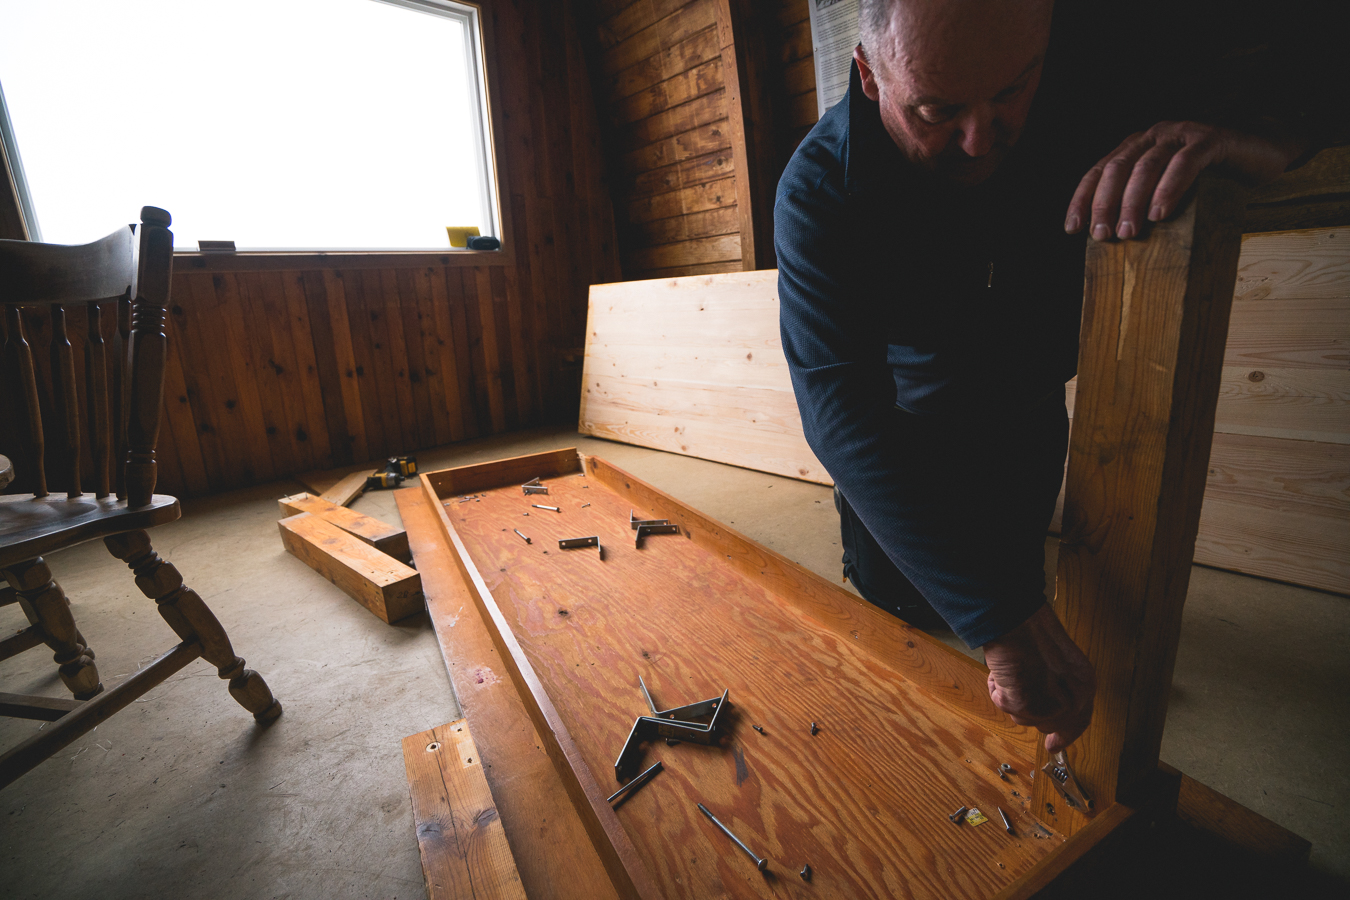 Mike deconstructs the old tables to be flown out.